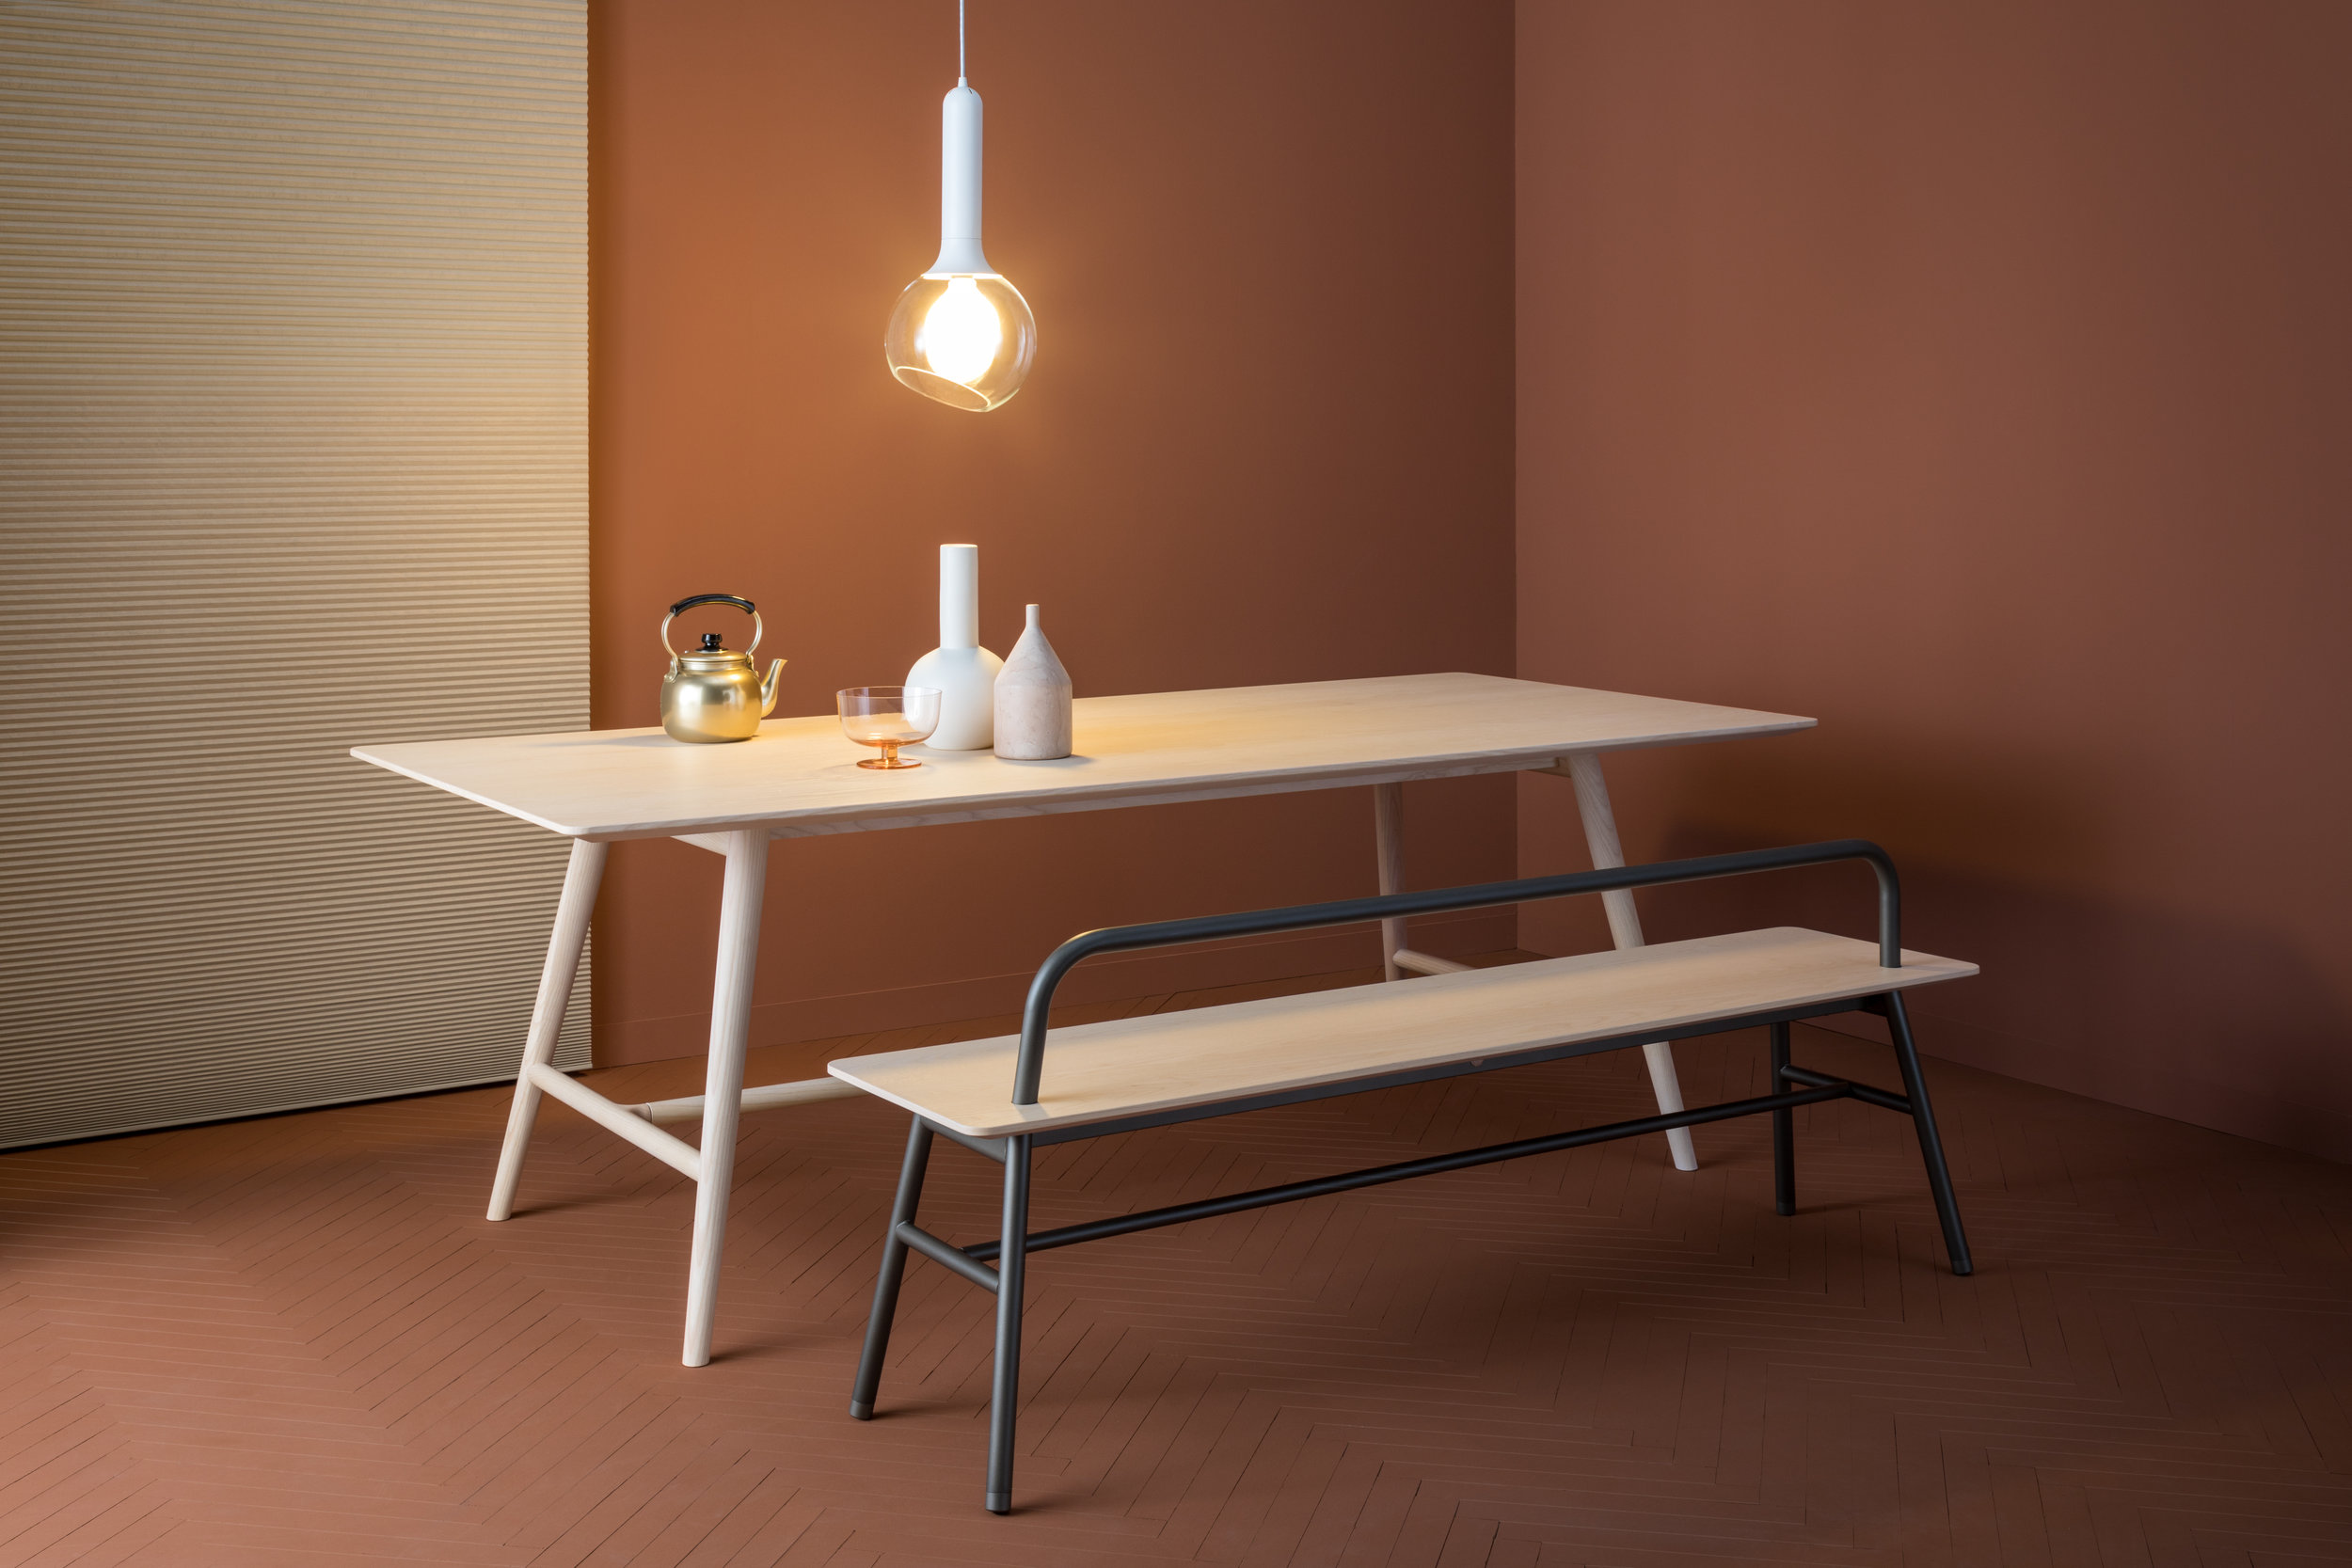 The expanded Holland collection includes a new bench seat and table.